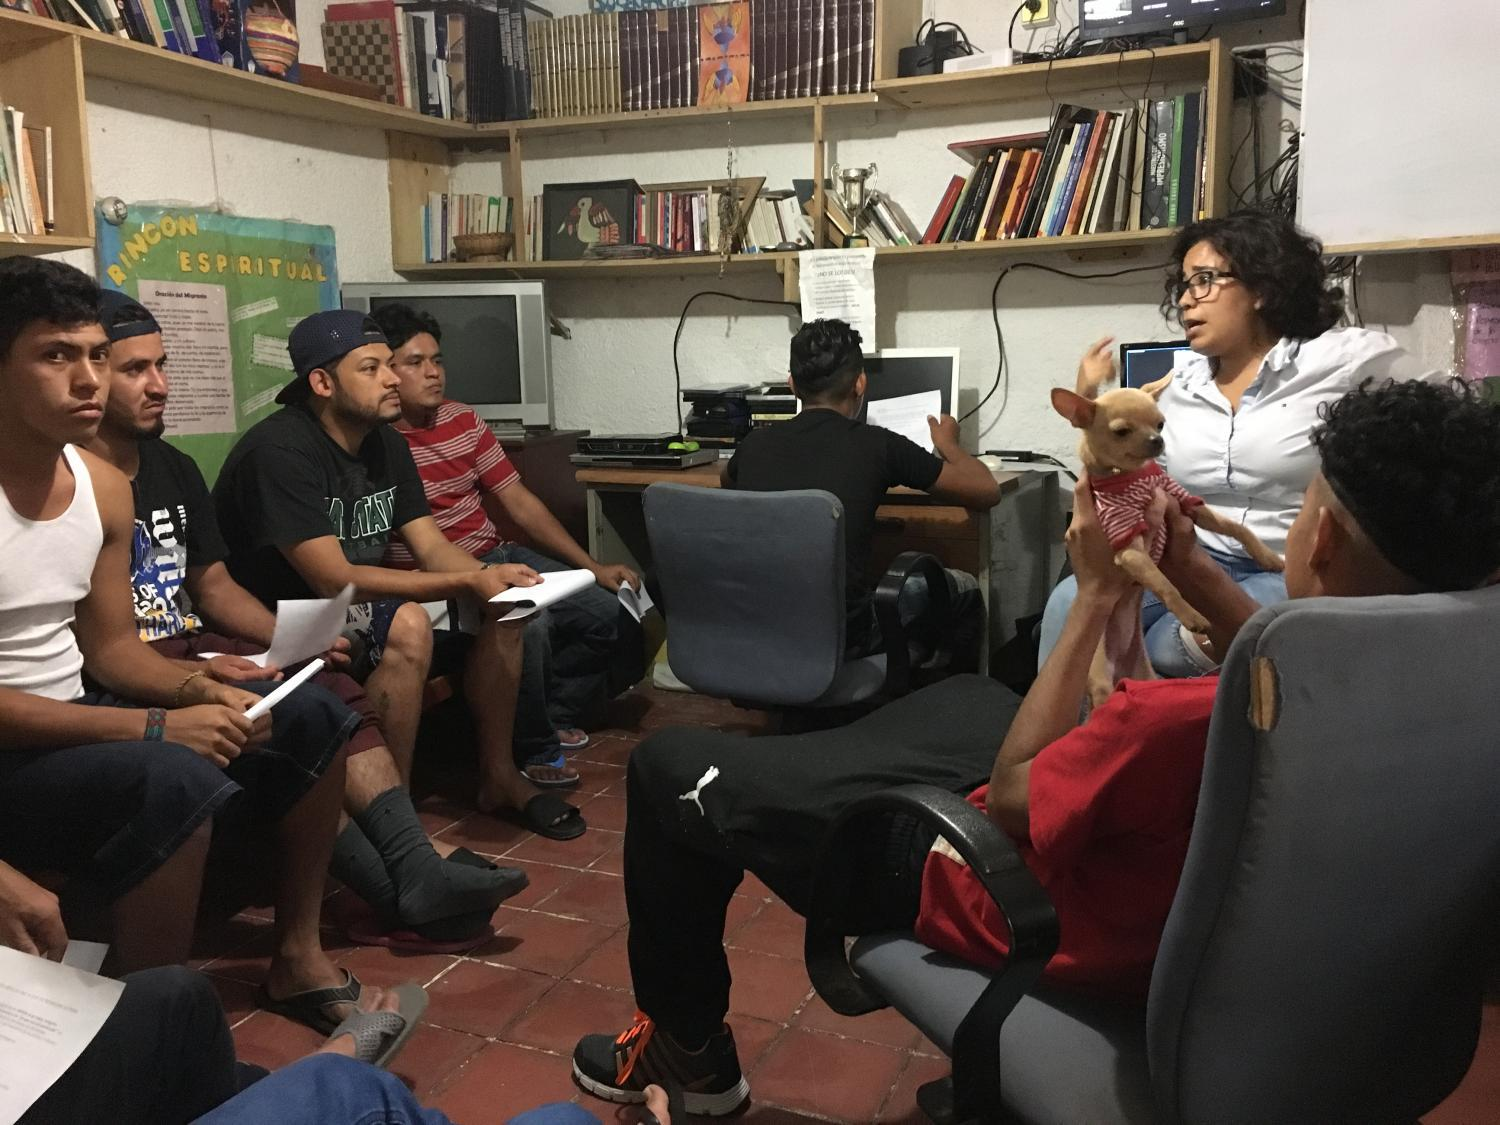 Delia Arias explains the basics of petitioning for asylum in the U.S.